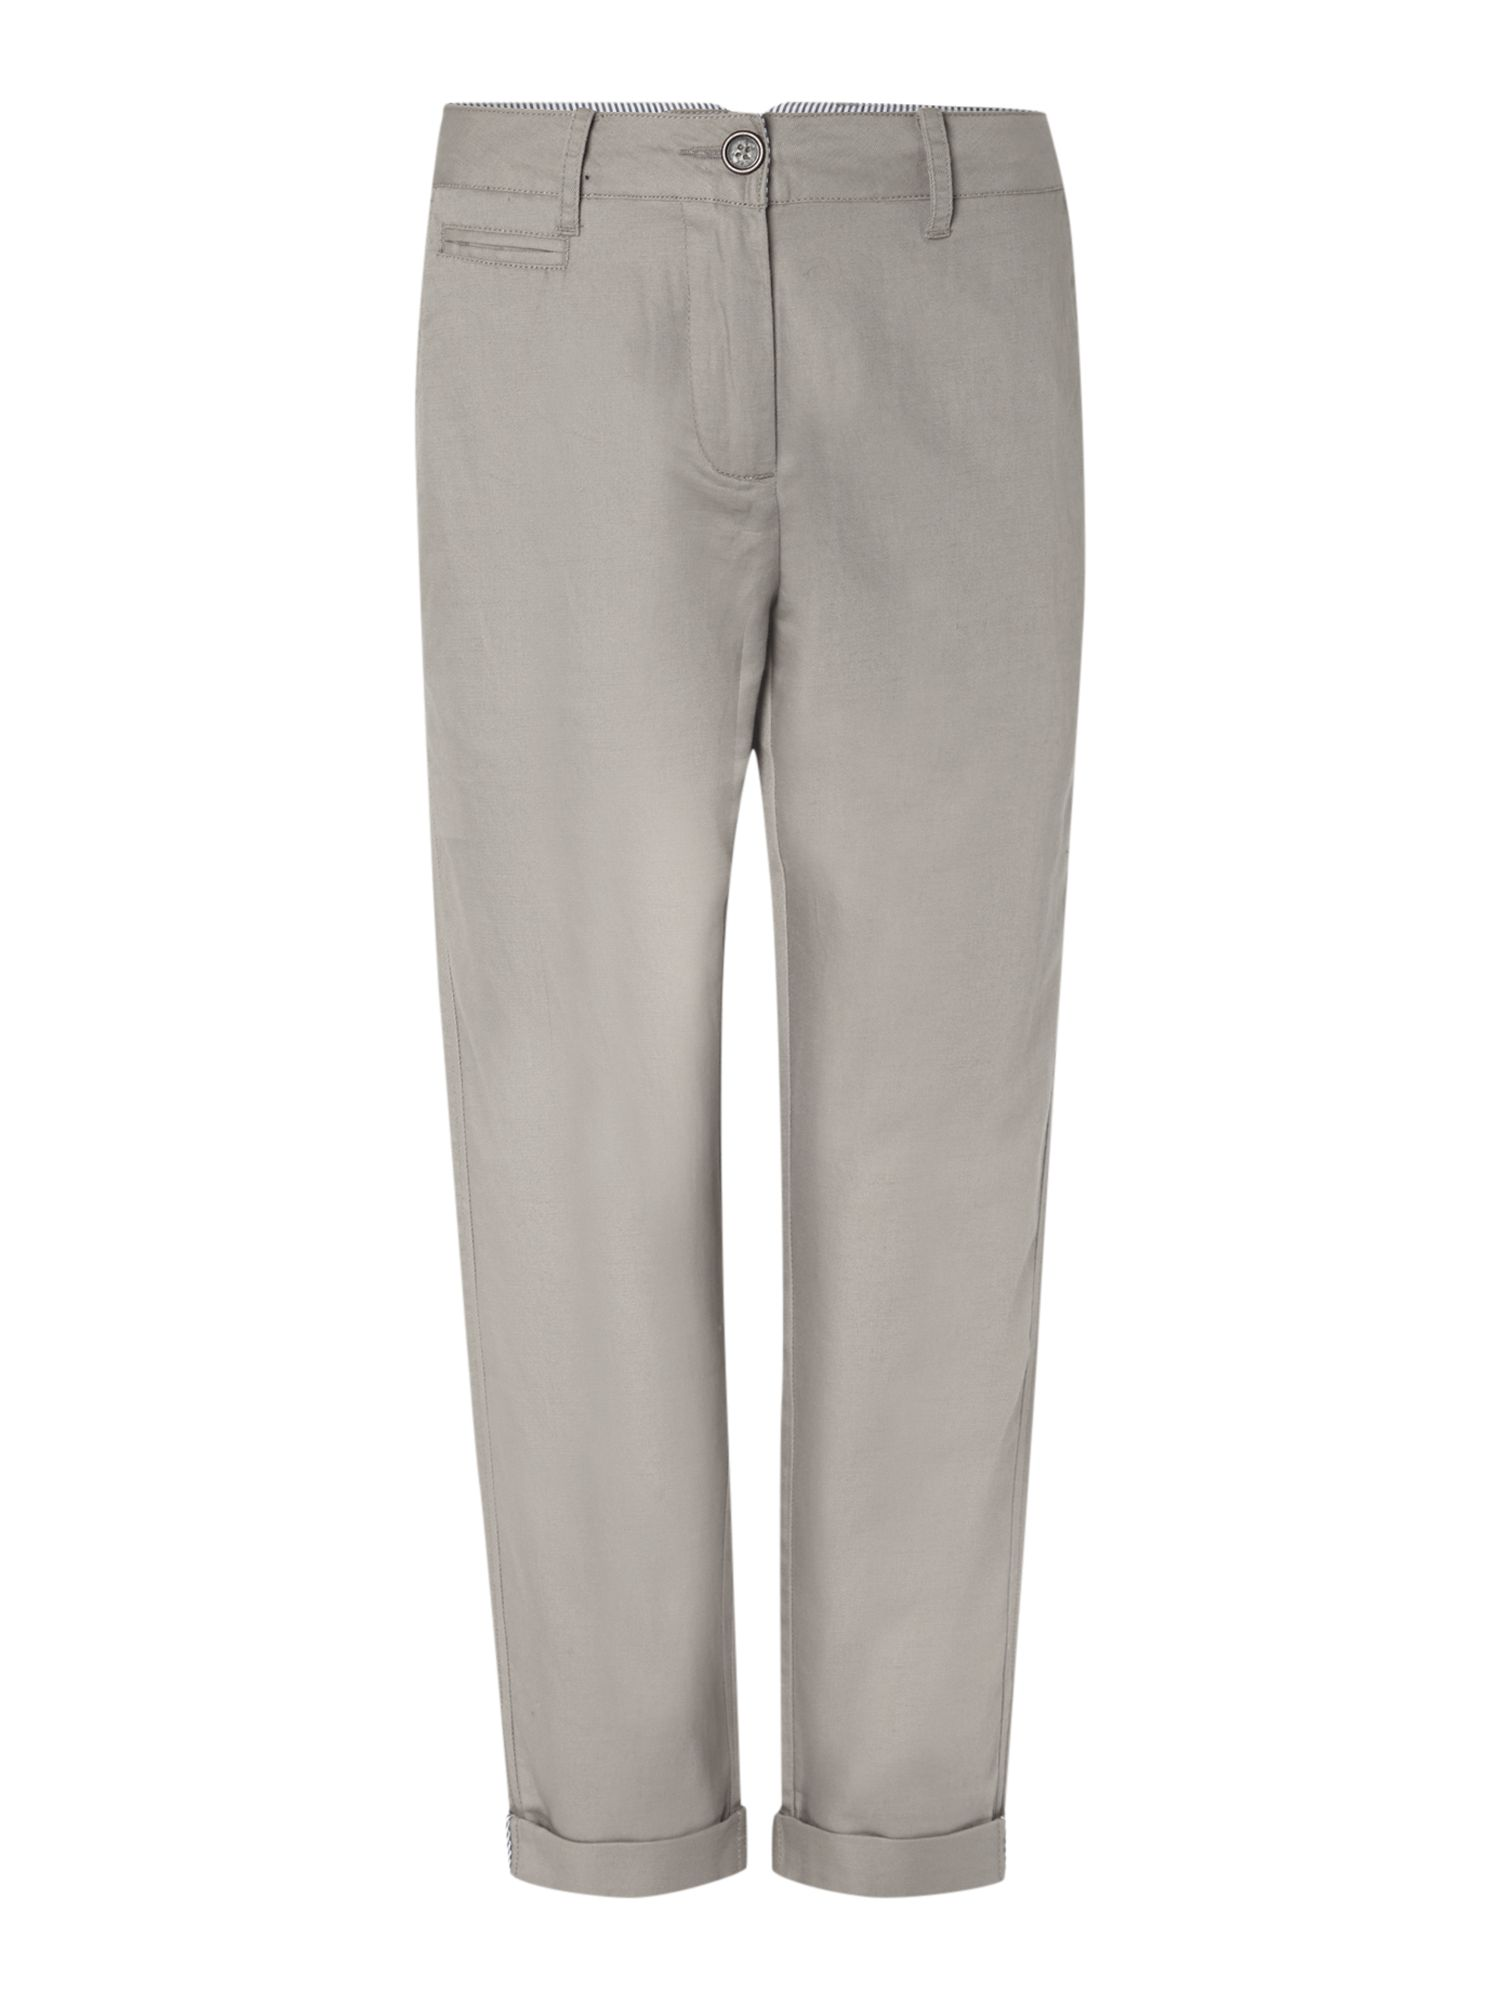 Linen mix chino trousers